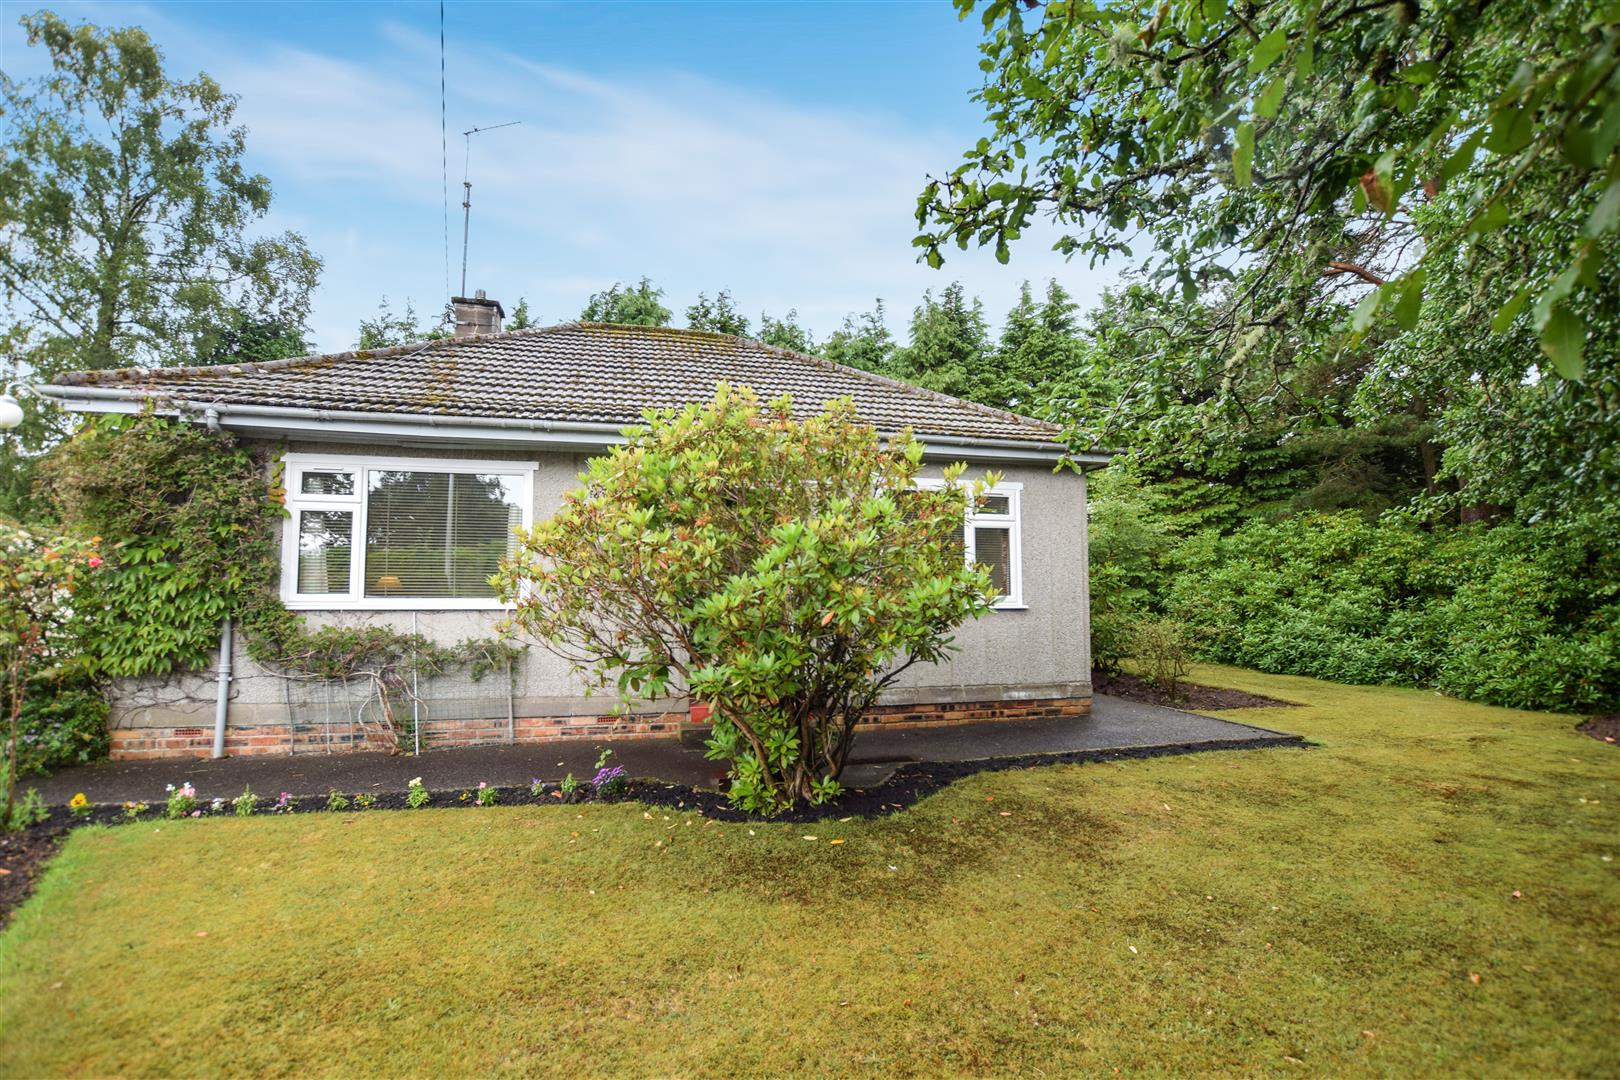 The Point Cottage, Orchil Road, Auchterarder, Perthshire, PH3 1LS, UK